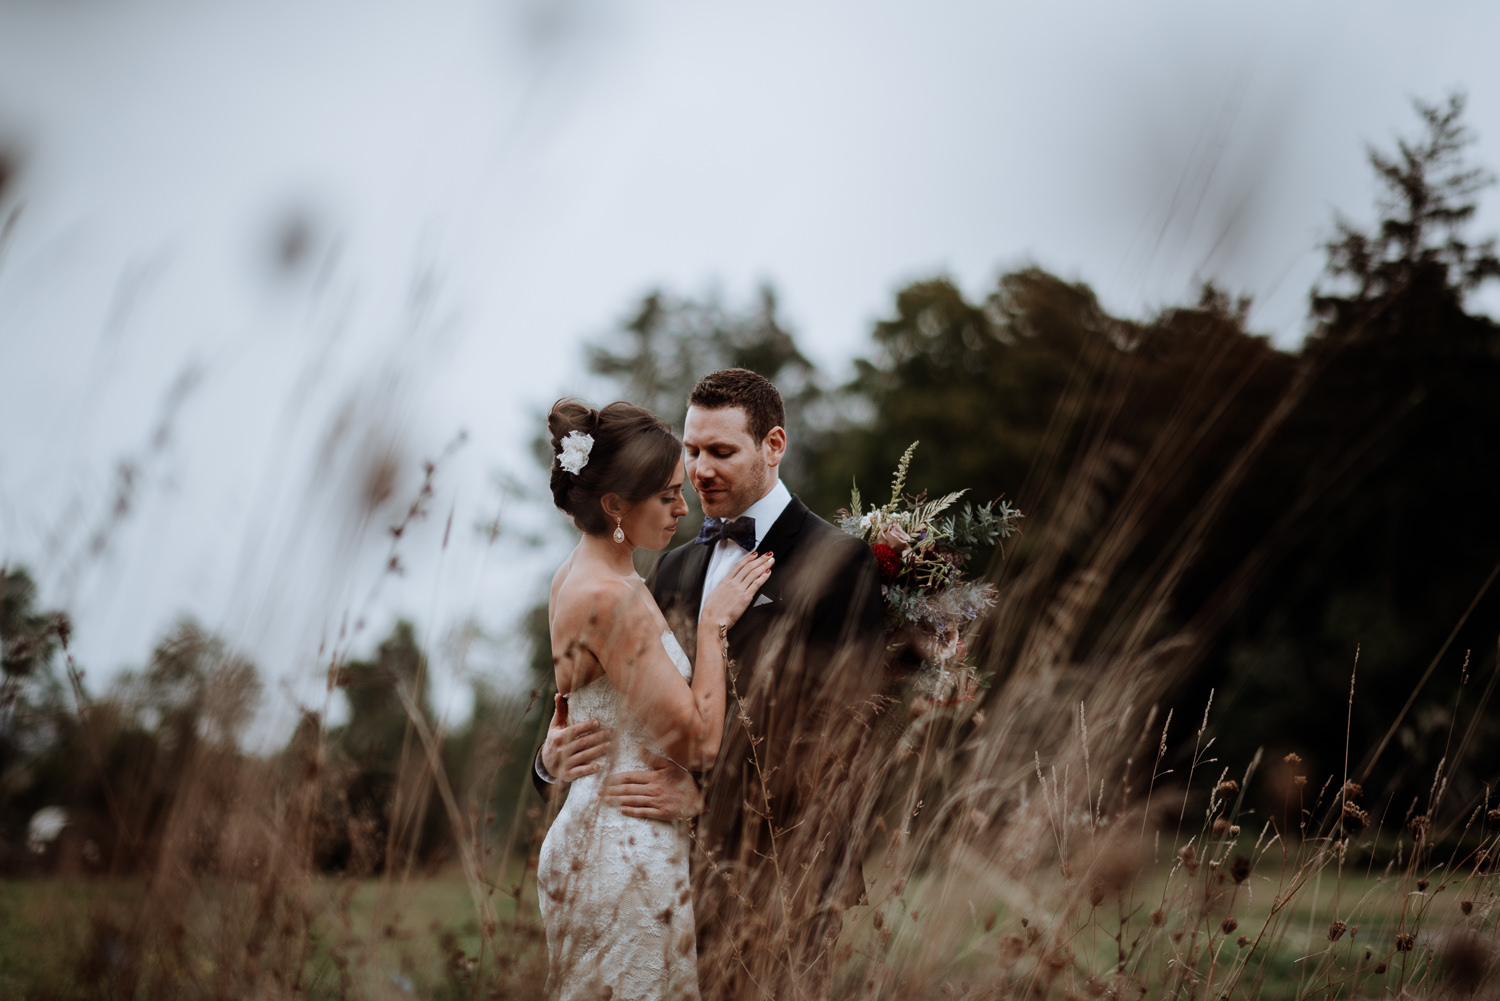 Gorgeous Wedding at Red Maple Vineyard, NY by Arius Photography